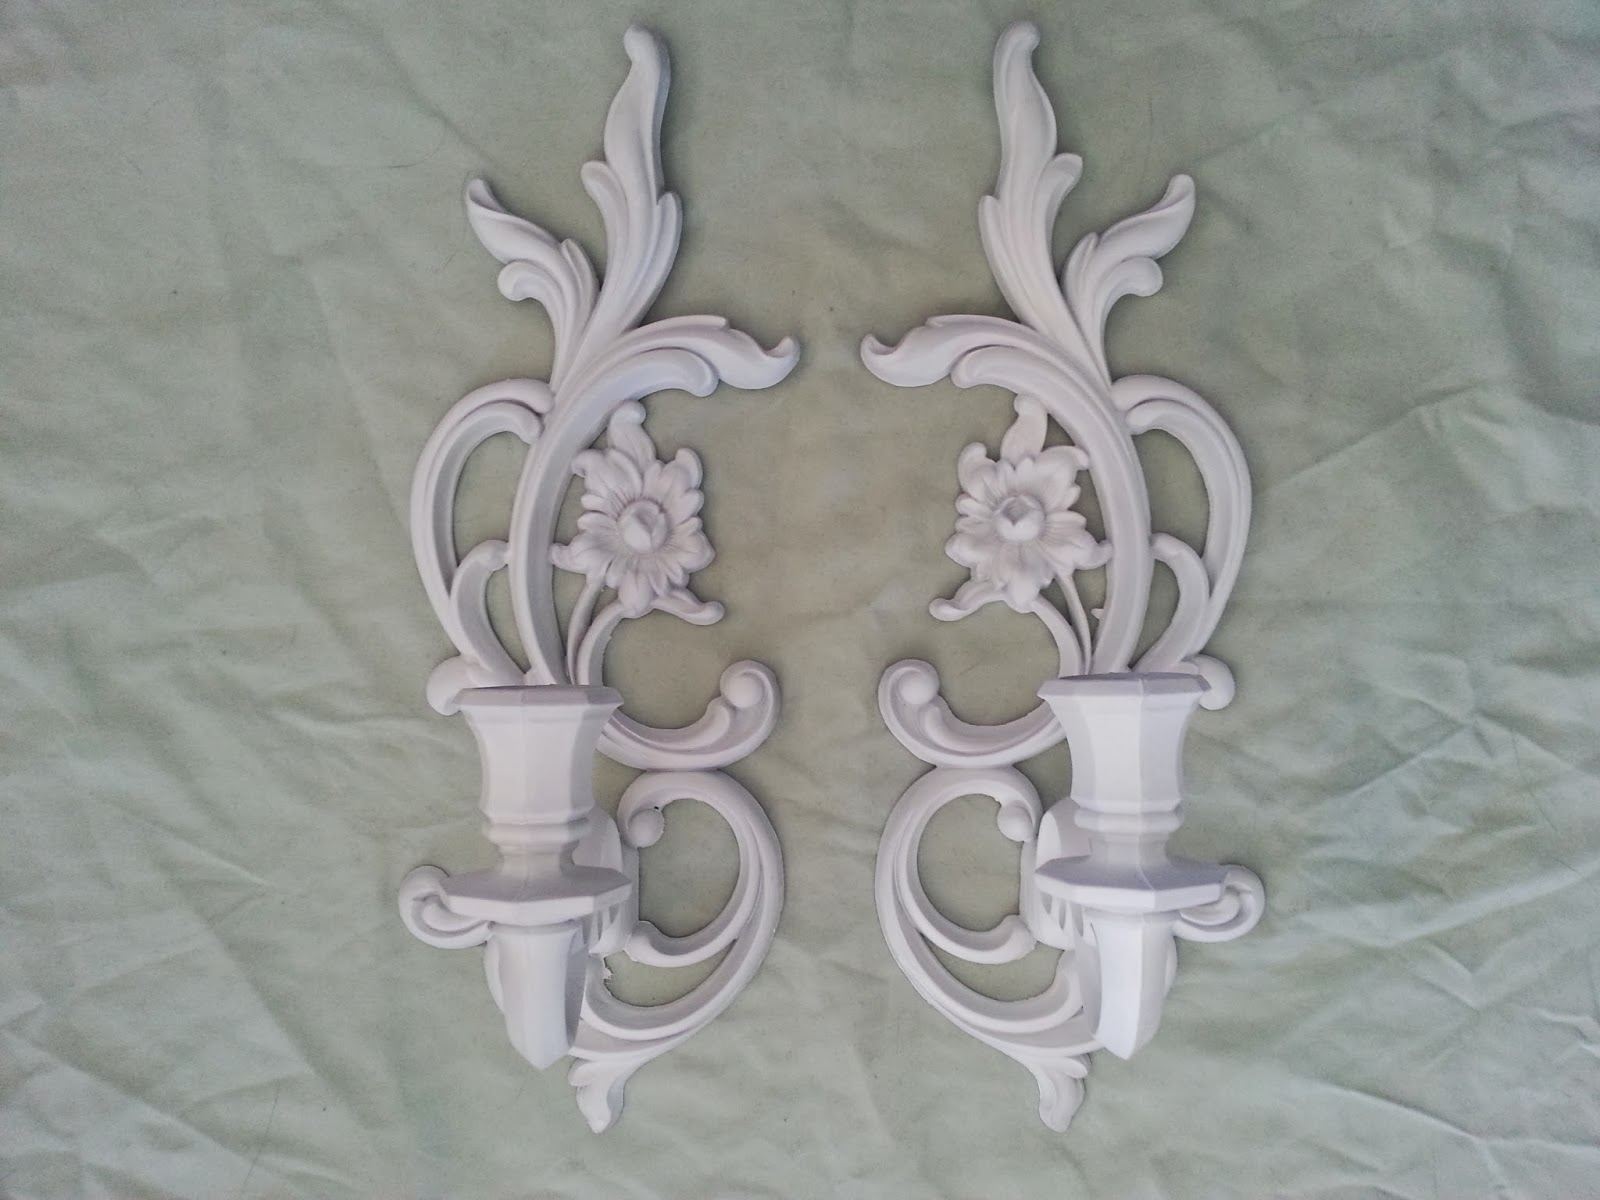 The Shabby Green Warehouse: Shabby Chic Candle Sconces